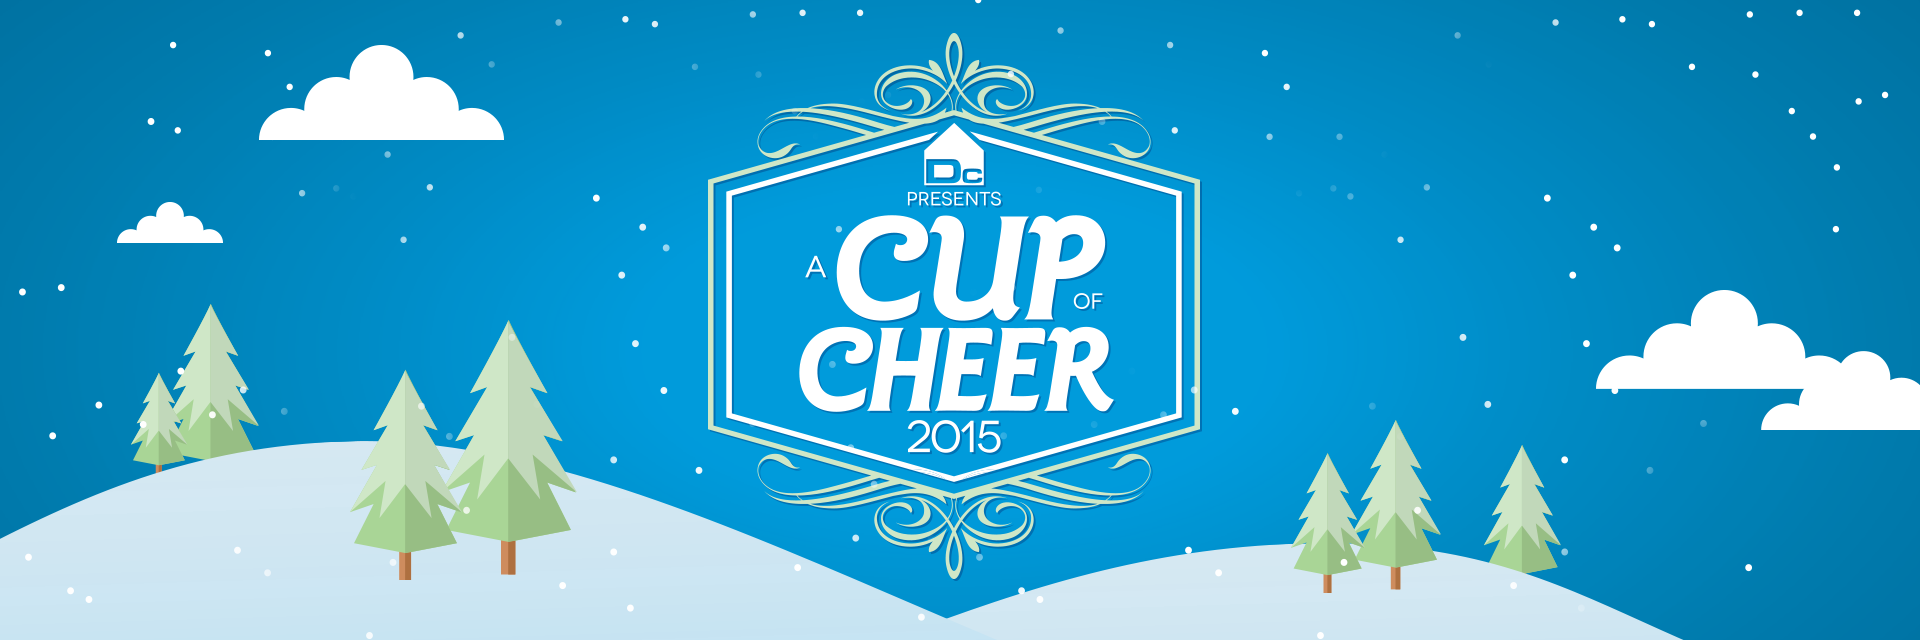 Dc Presents: a Cup of Cheer